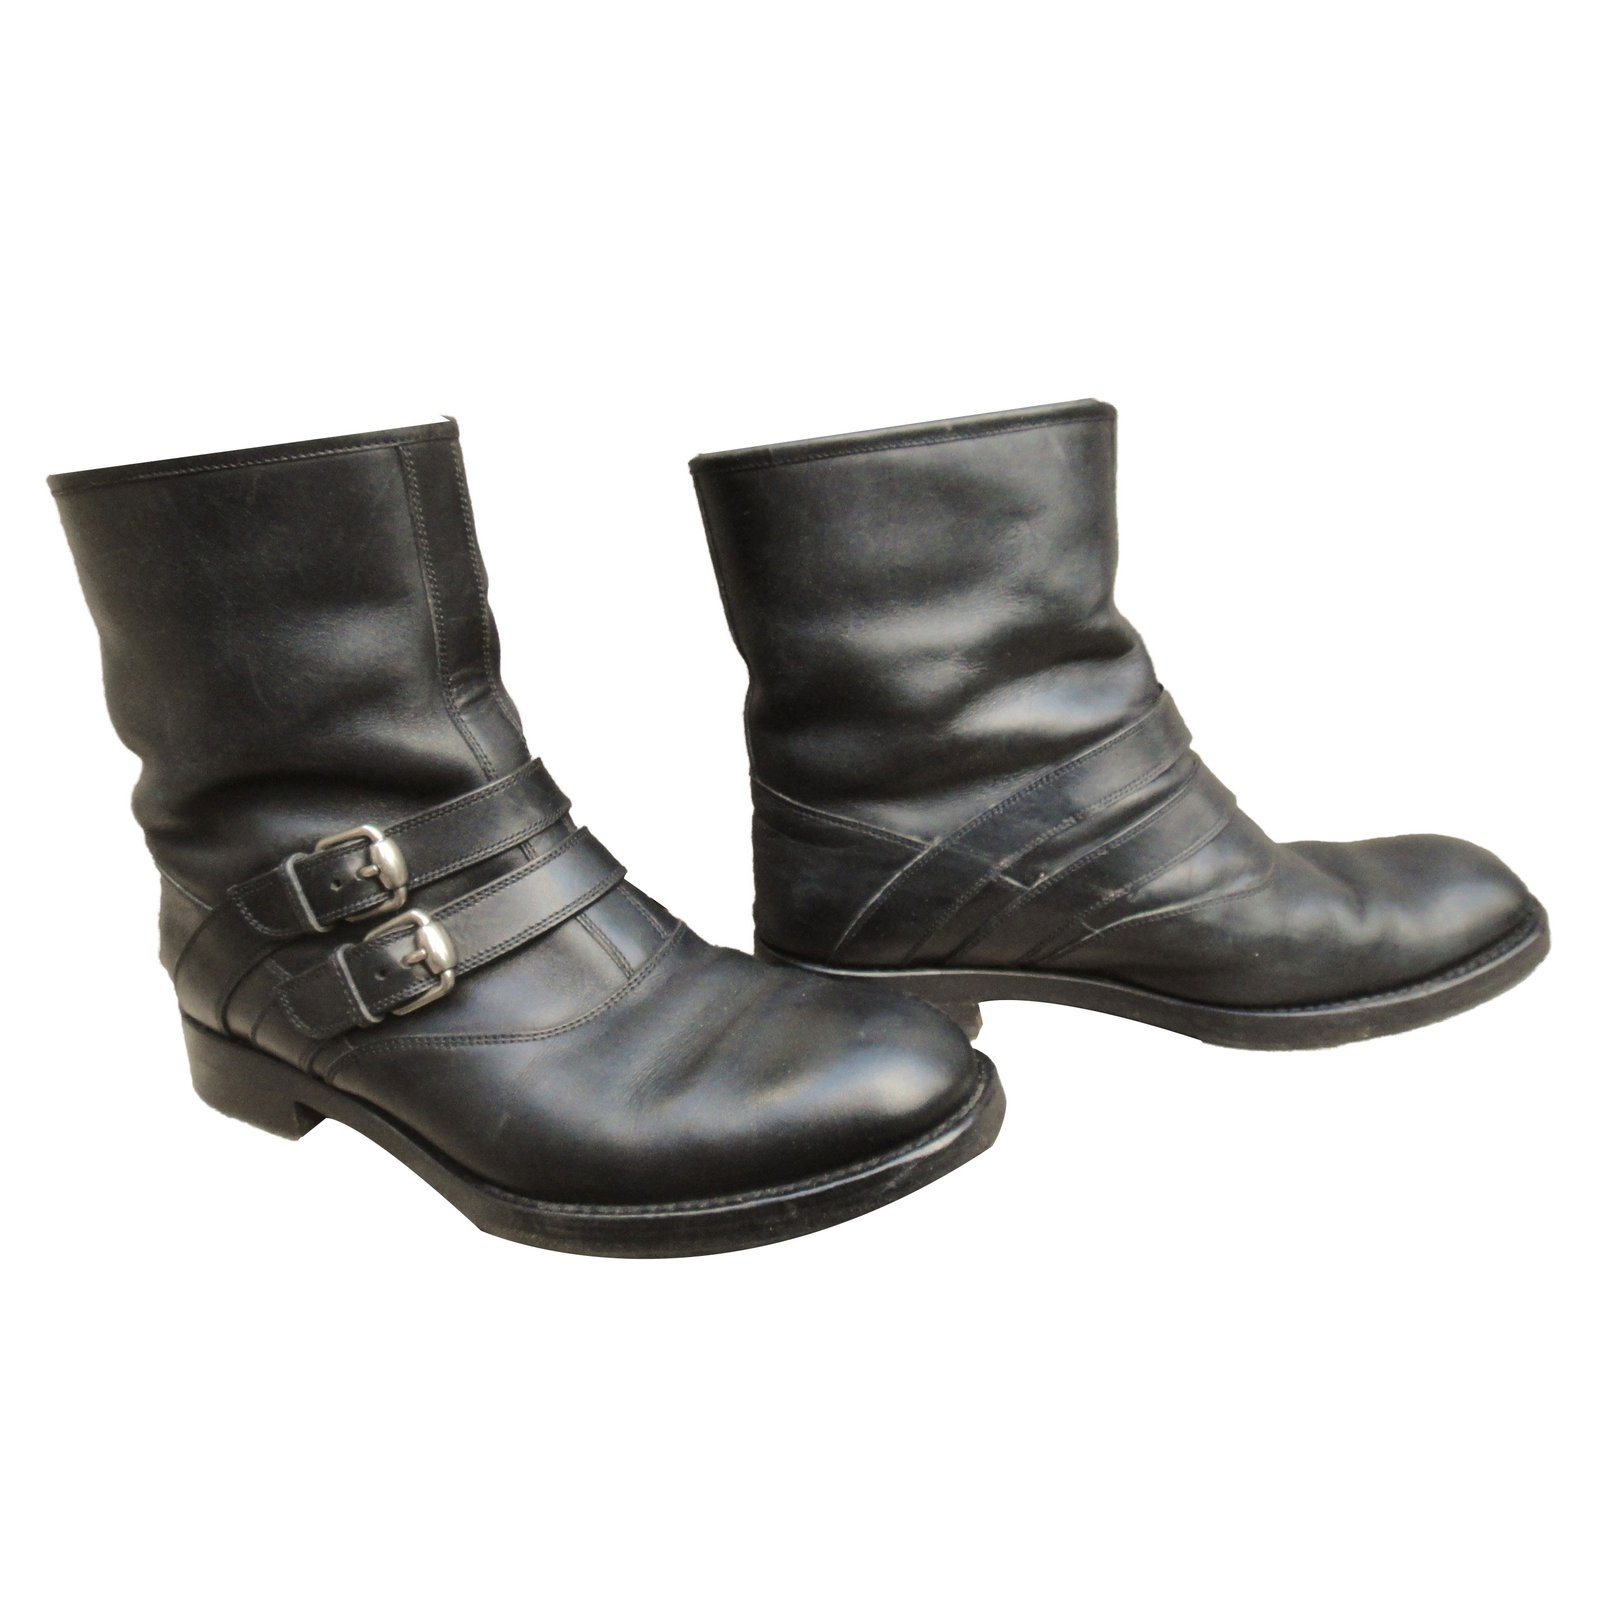 eb6bff35b Gucci Ankle Boots Ankle Boots Leather Black ref.69403 - Joli Closet